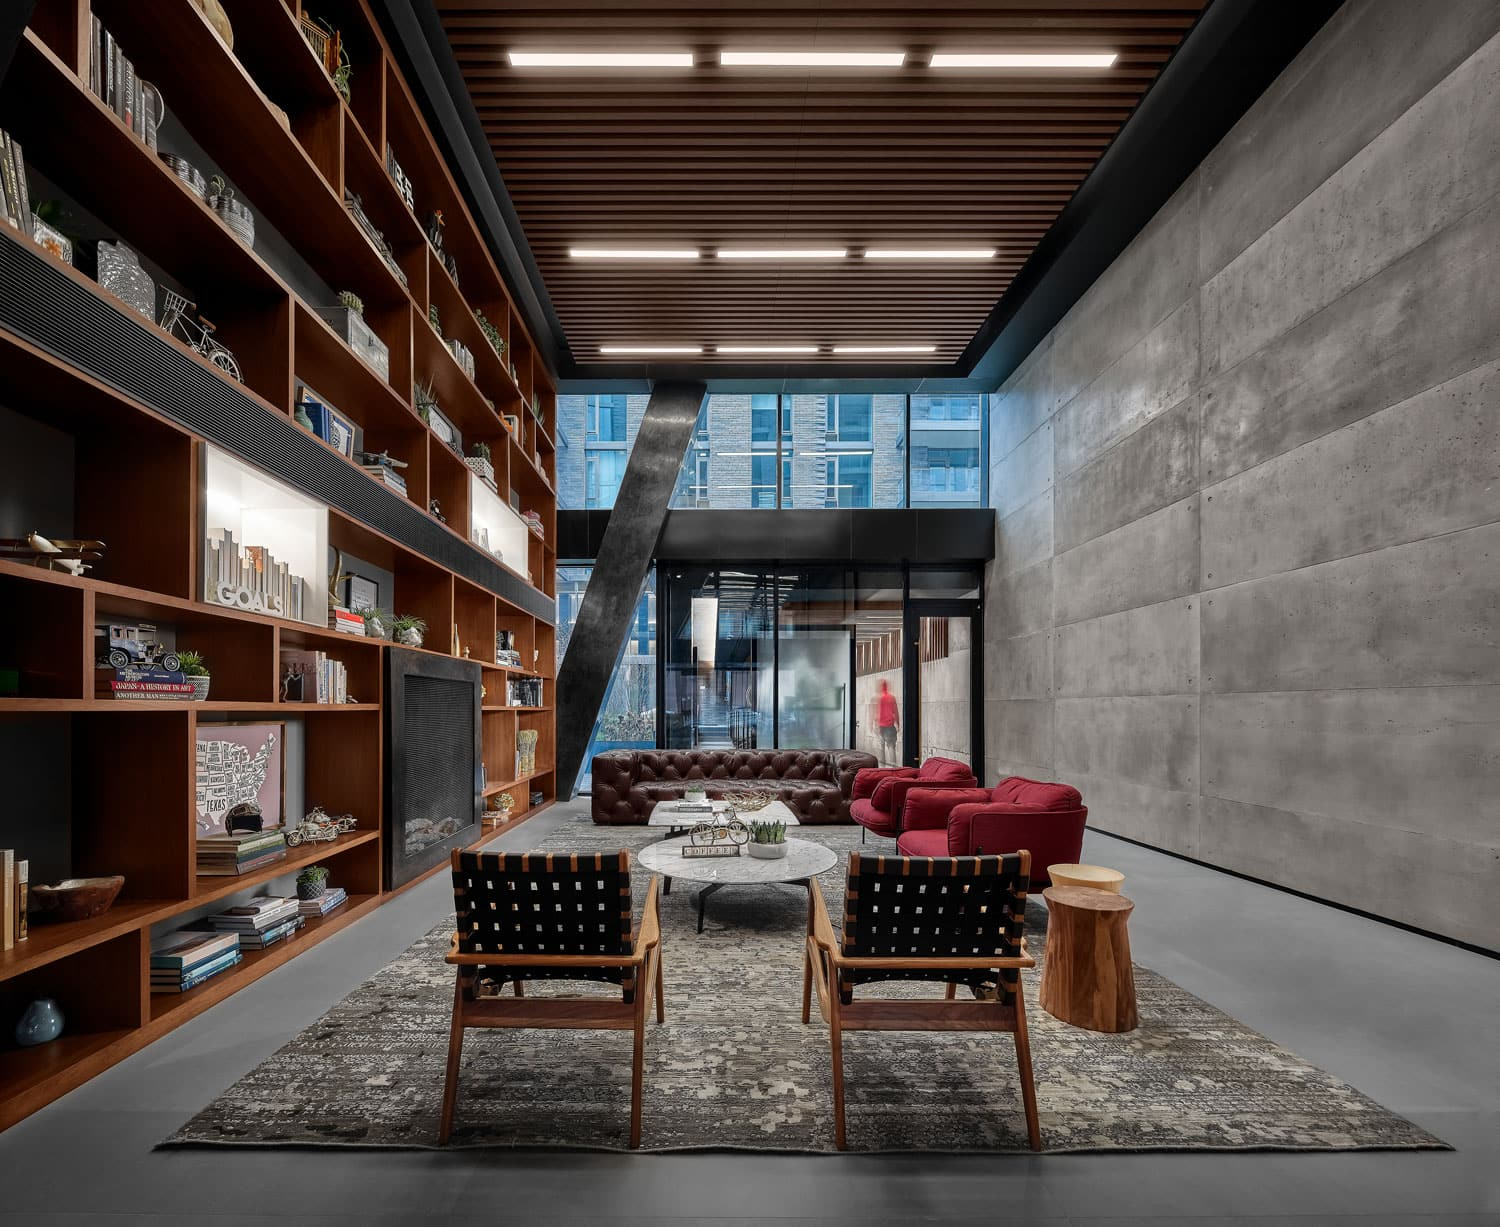 Sitting area and library